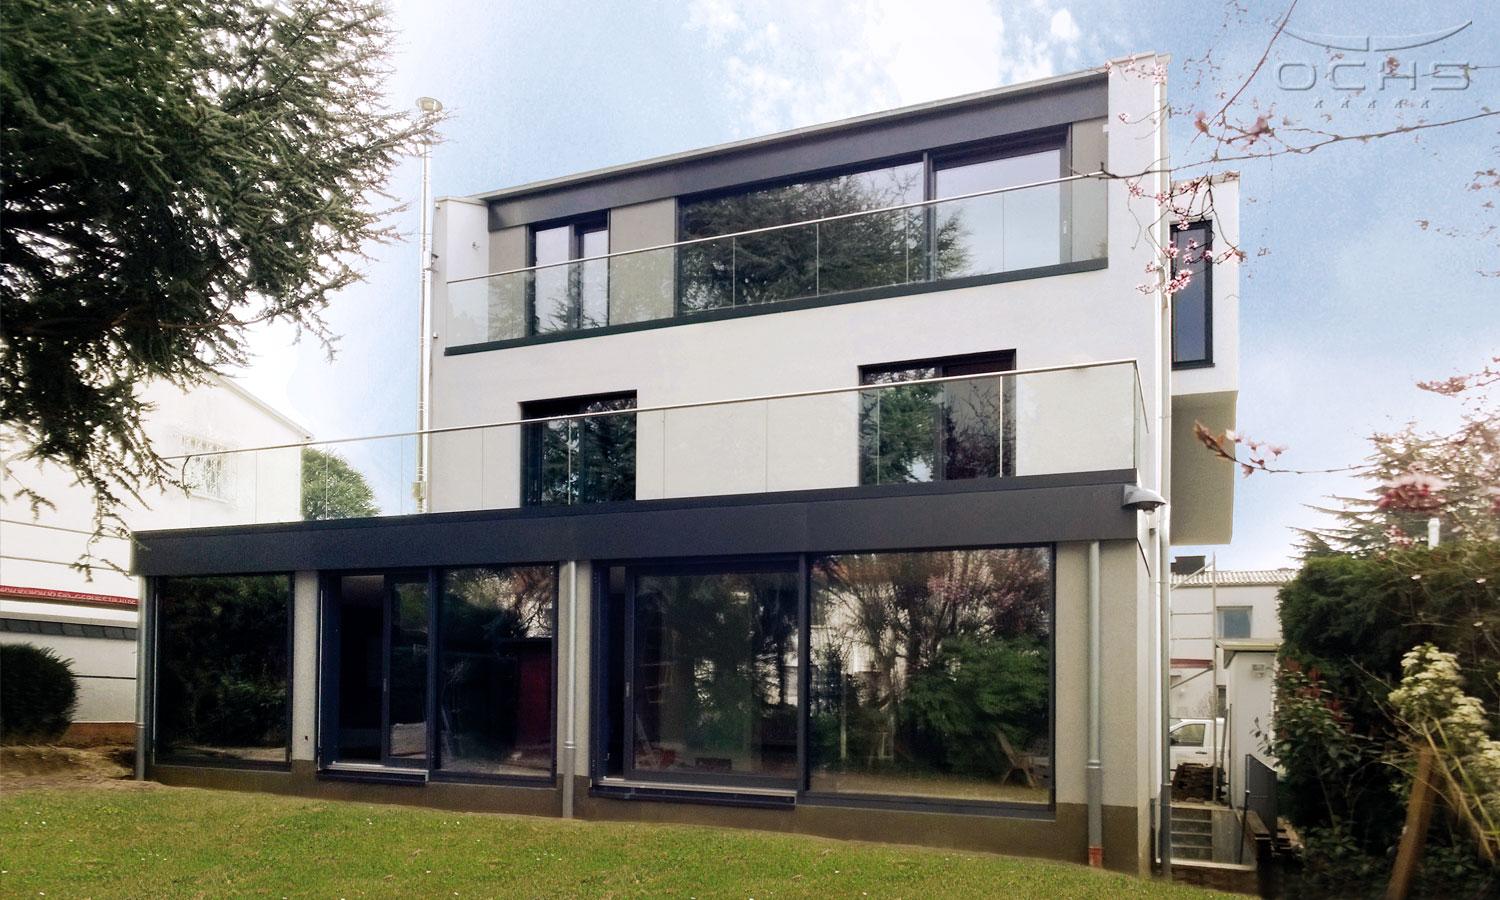 Roof elevation and extension in Frankfurt a.M.